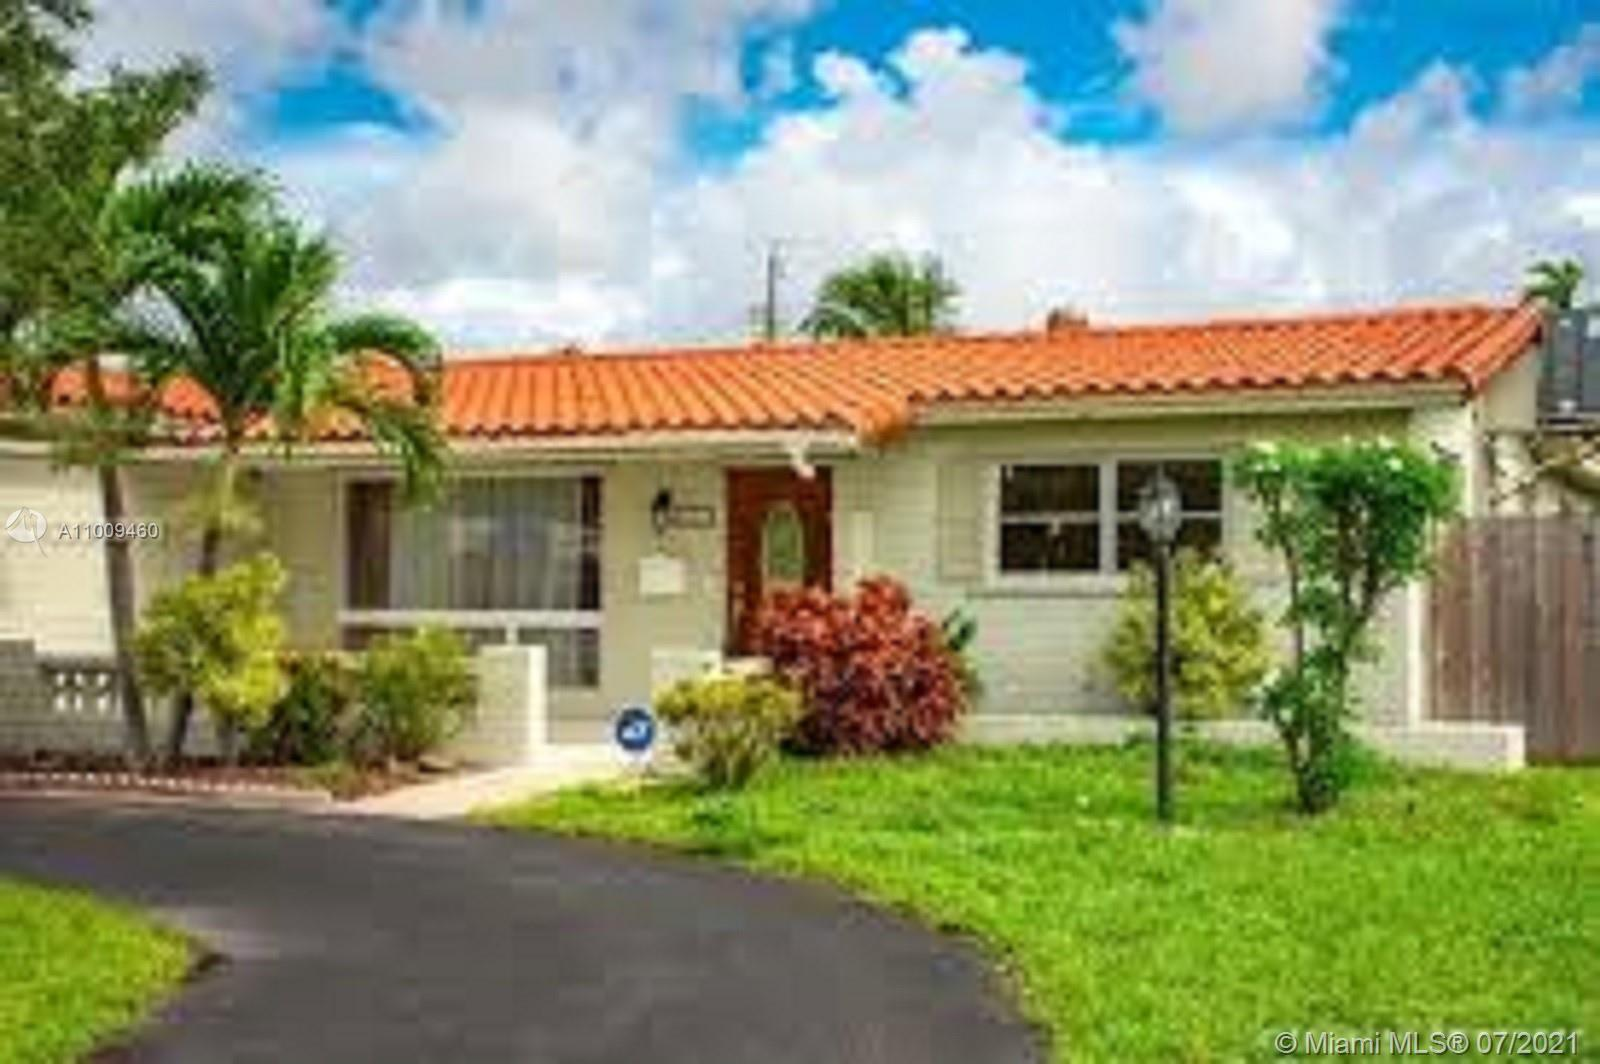 THIS IS 3 BEDROOMS 2 BATH BEAUTIFUL SINGLE FAMILY HOME IN THE HEART OF HOLLYWOOD HILLS.  THIS HOME F